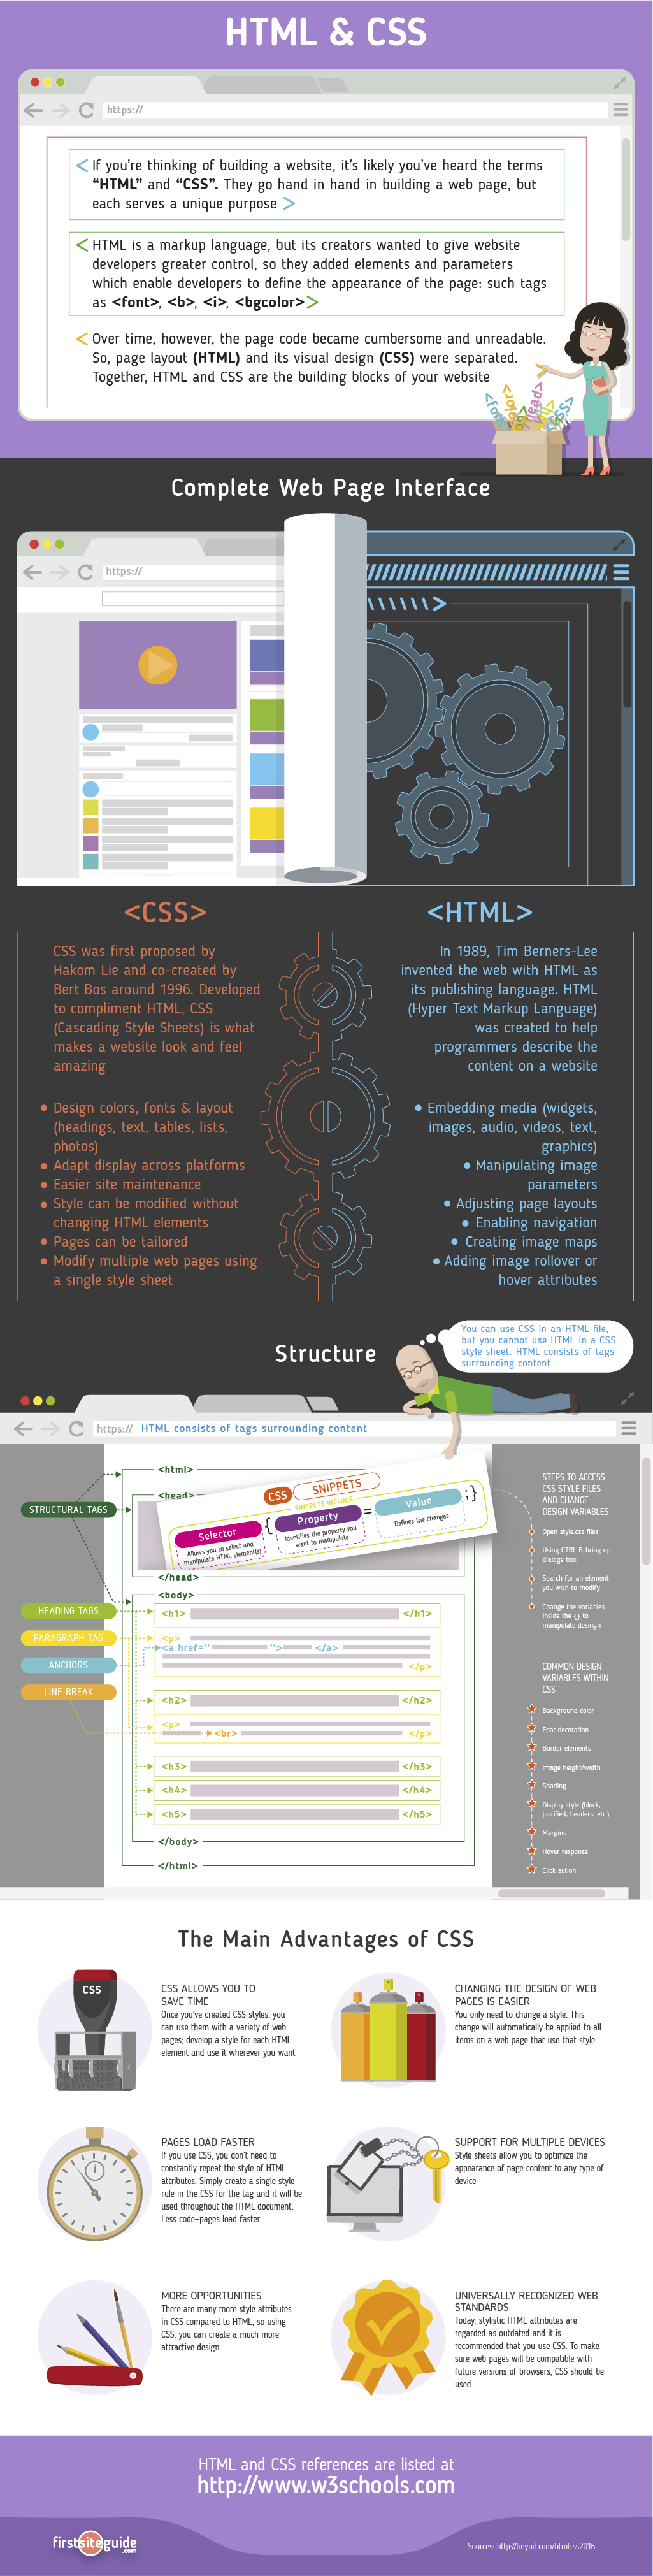 HTML & CSS - Cheat Sheet